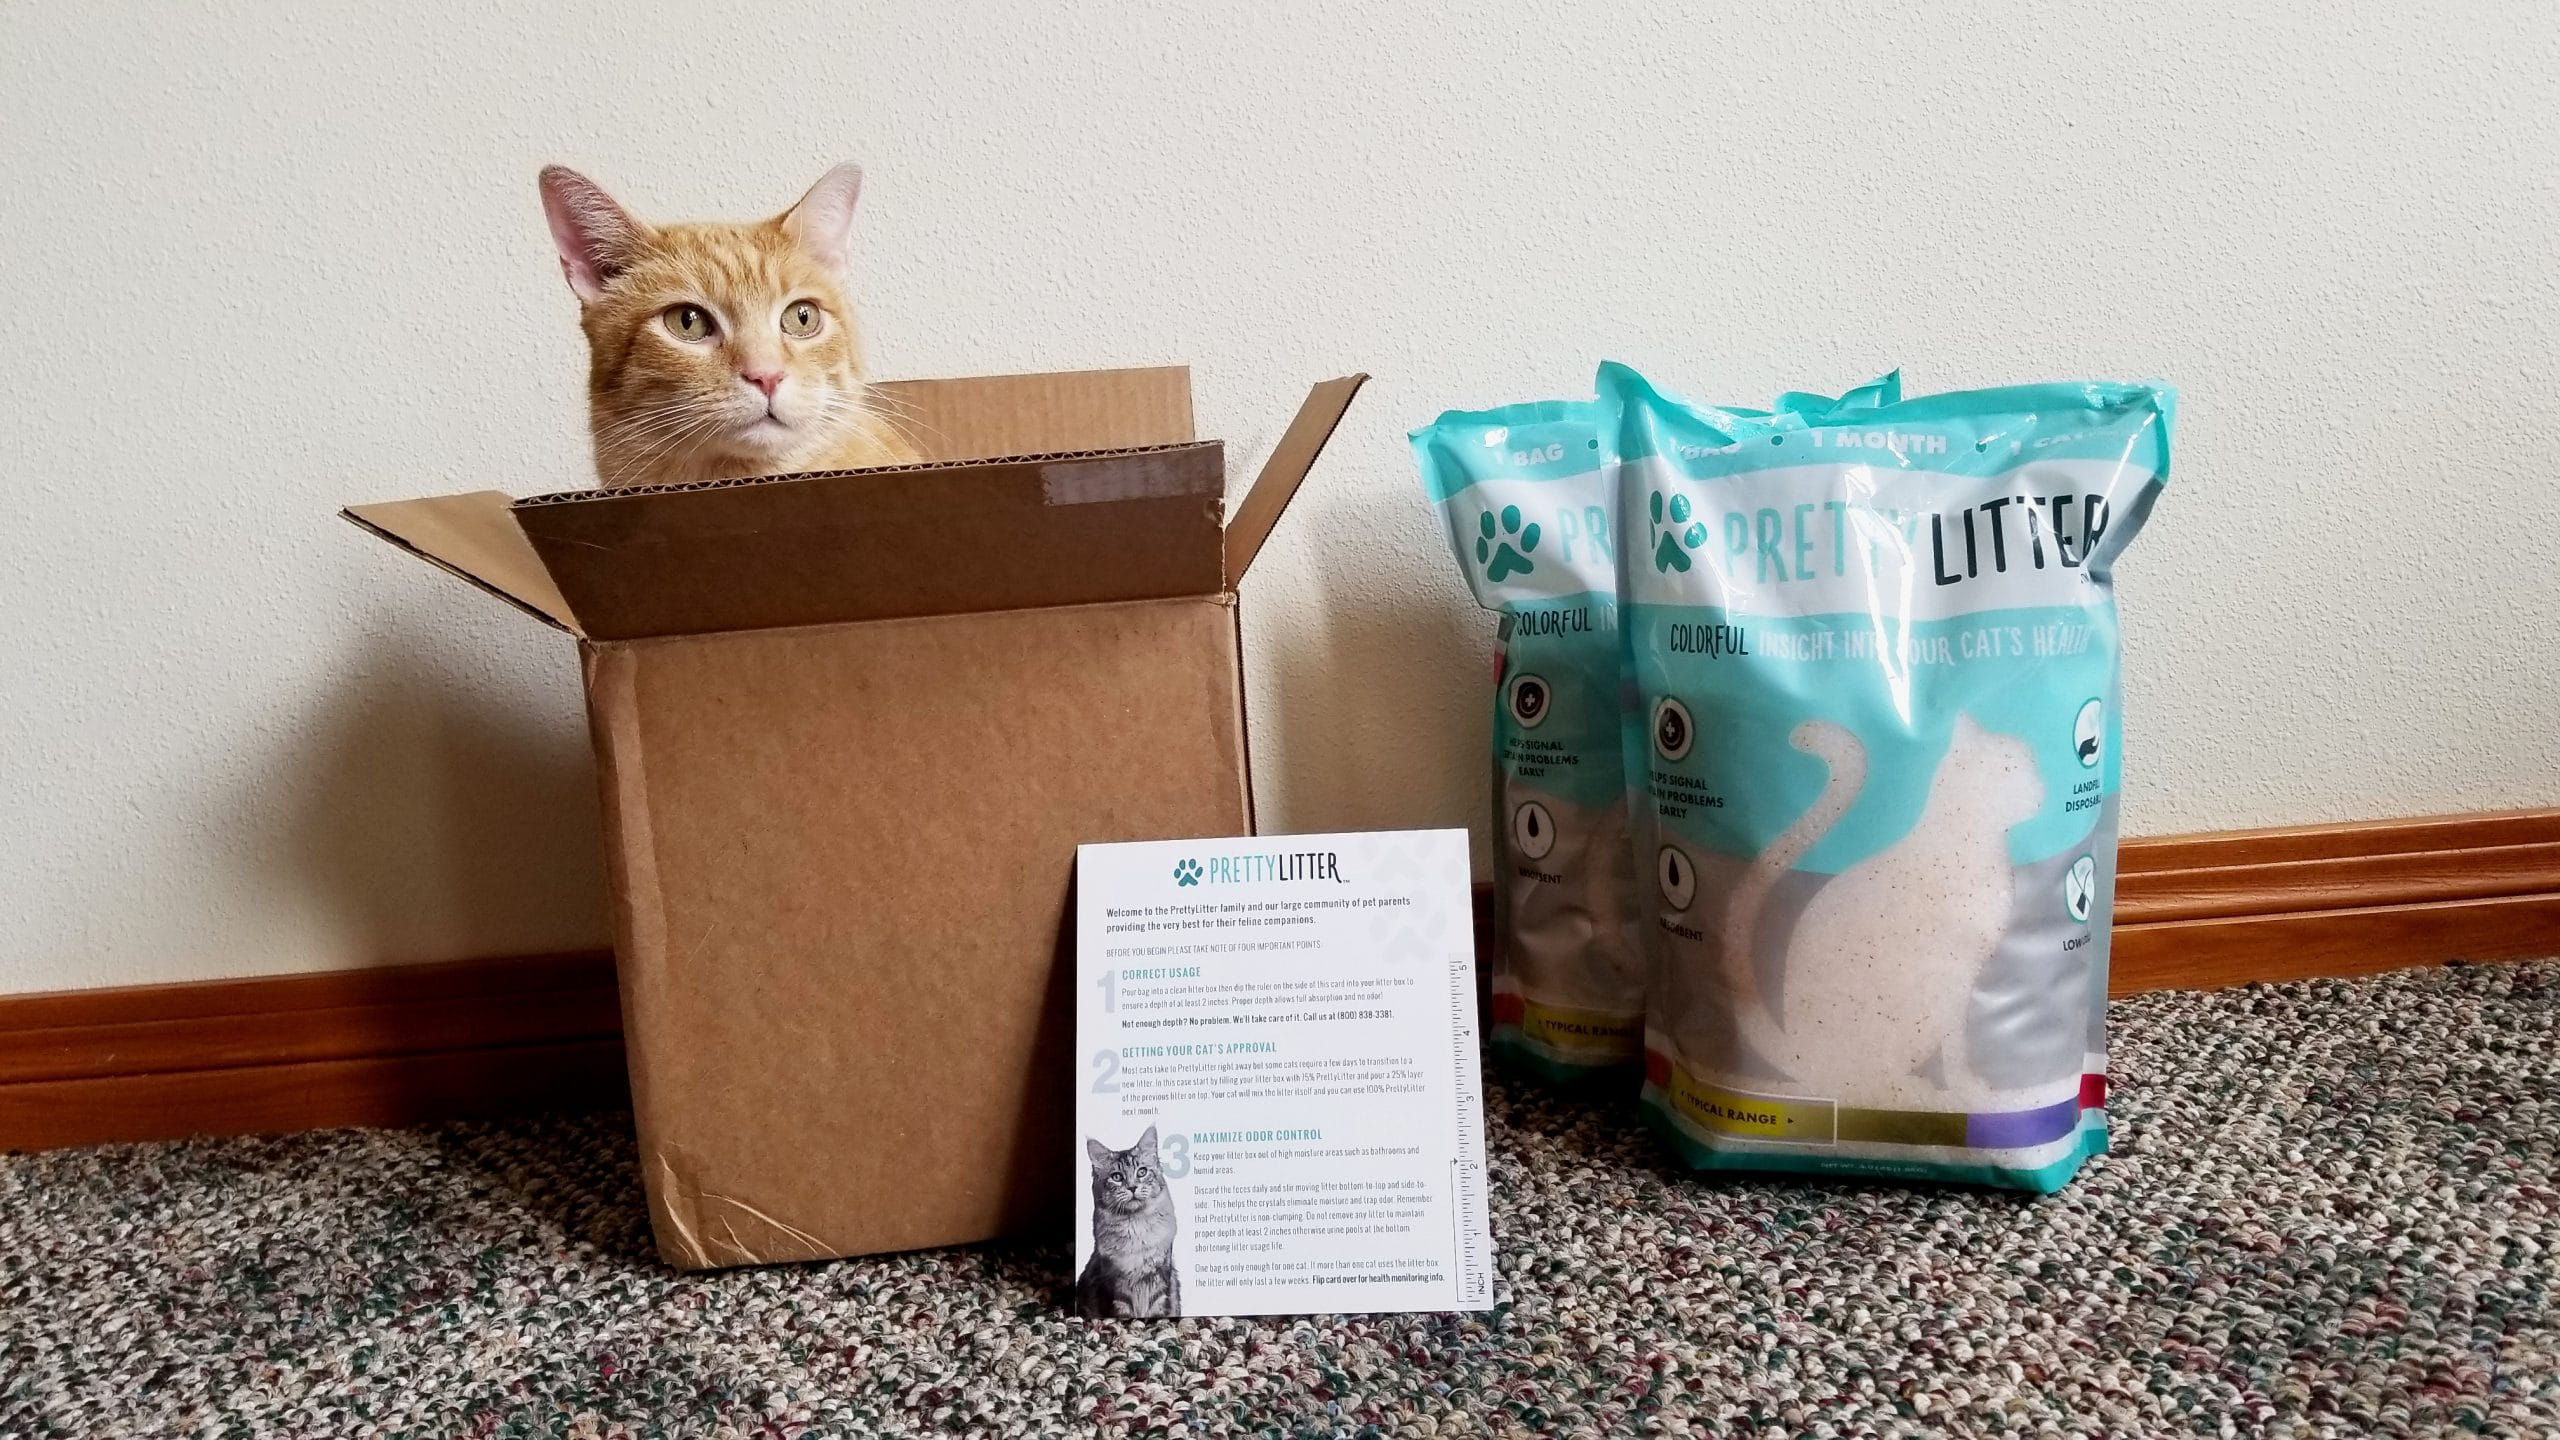 Pretty Litter Review - We Tried This Subscription Cat Litter for 2